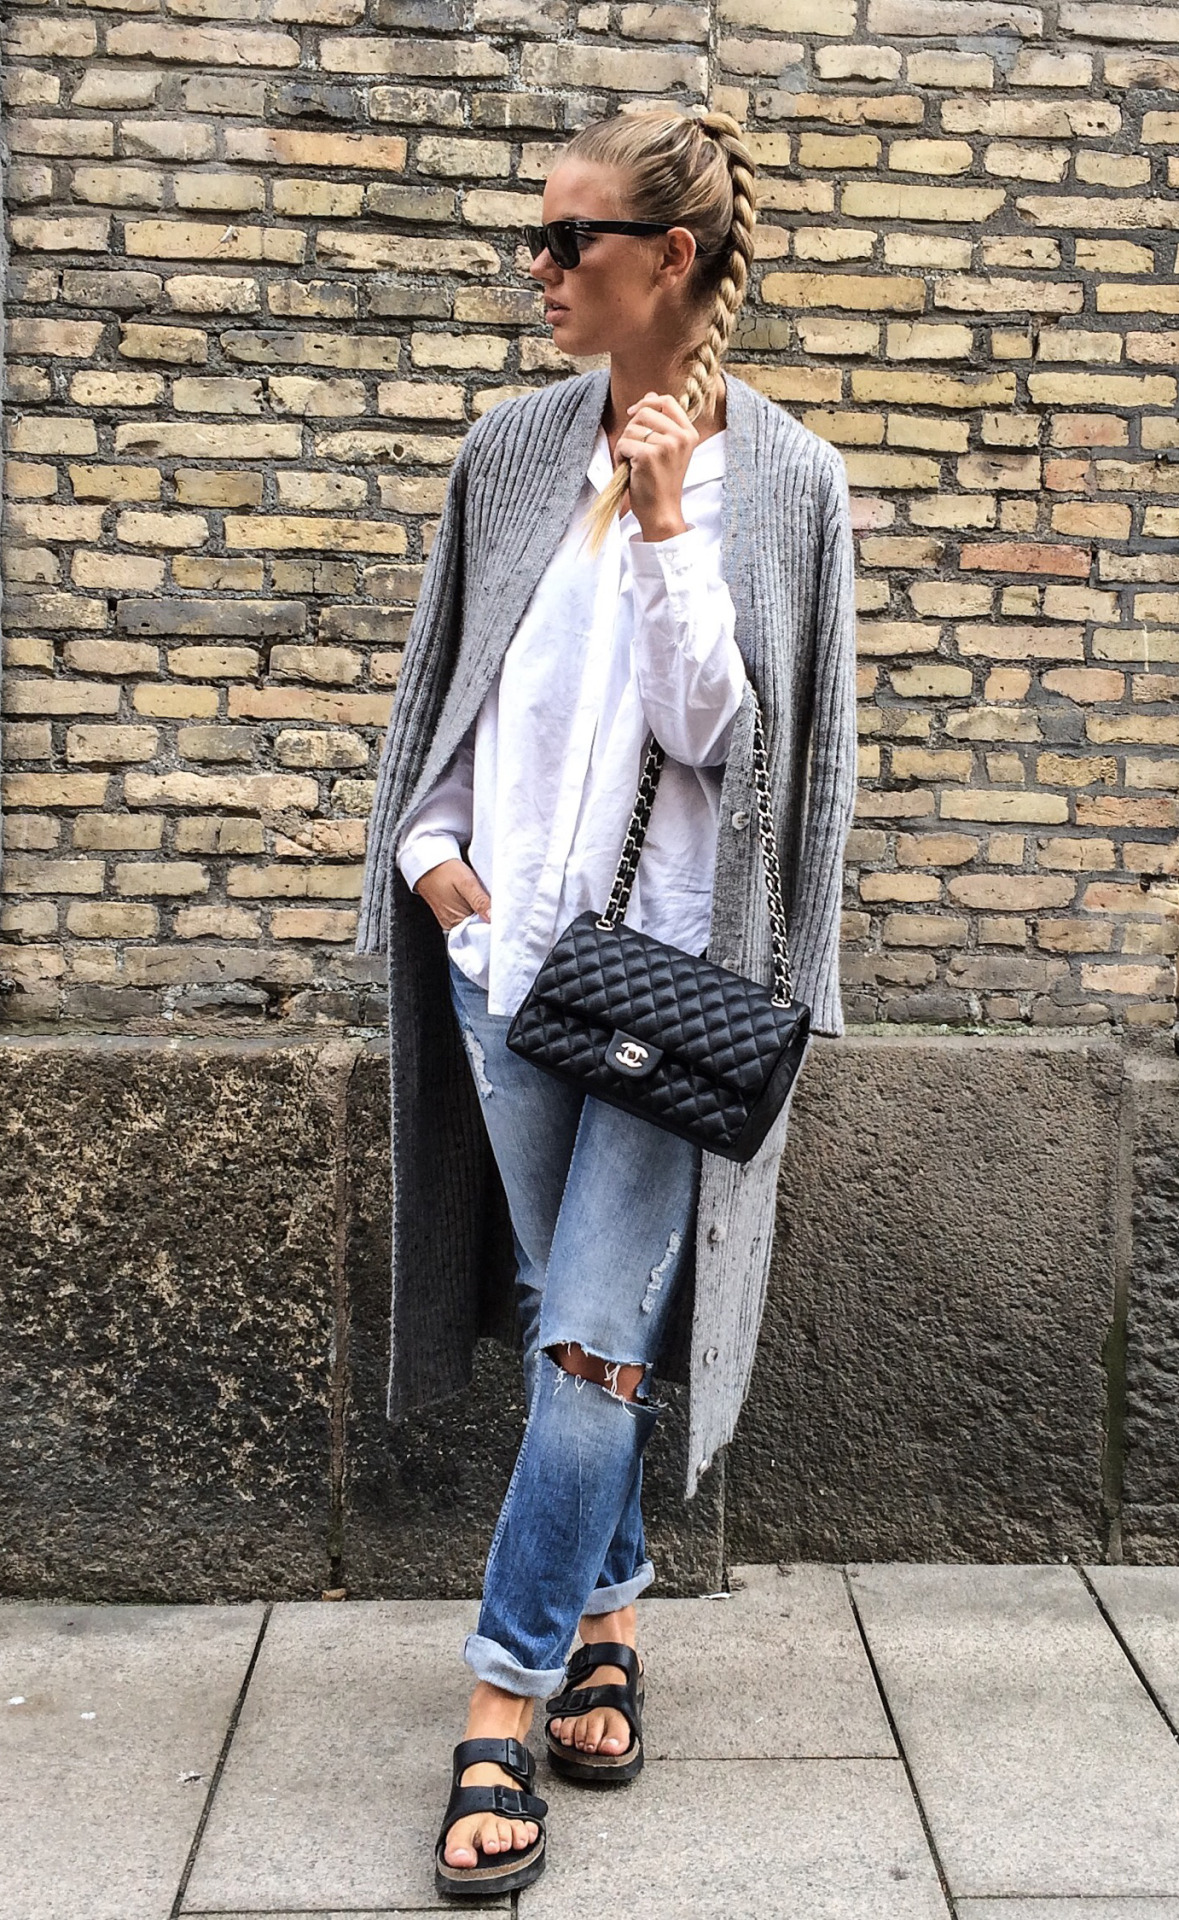 Frida Grahn is wearing a white shirt and distressed boyfriend jeans from Ginatricot with an ash grey Chiquelle oversized cardigan, black Din Sko sandals and a Chanel handbag